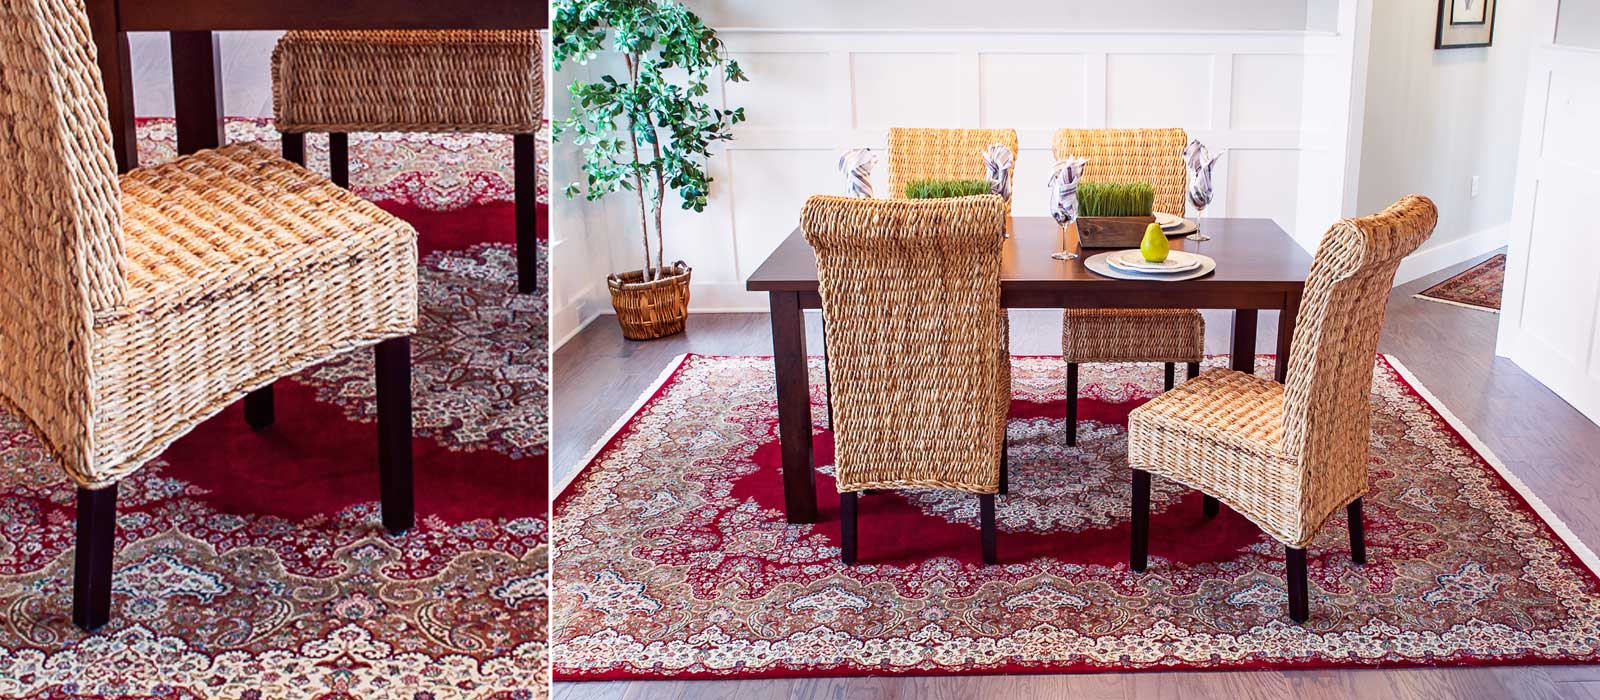 Dining Room Carpet Rug Event In Evanston Ilfair Trade Bunyaad Rugs